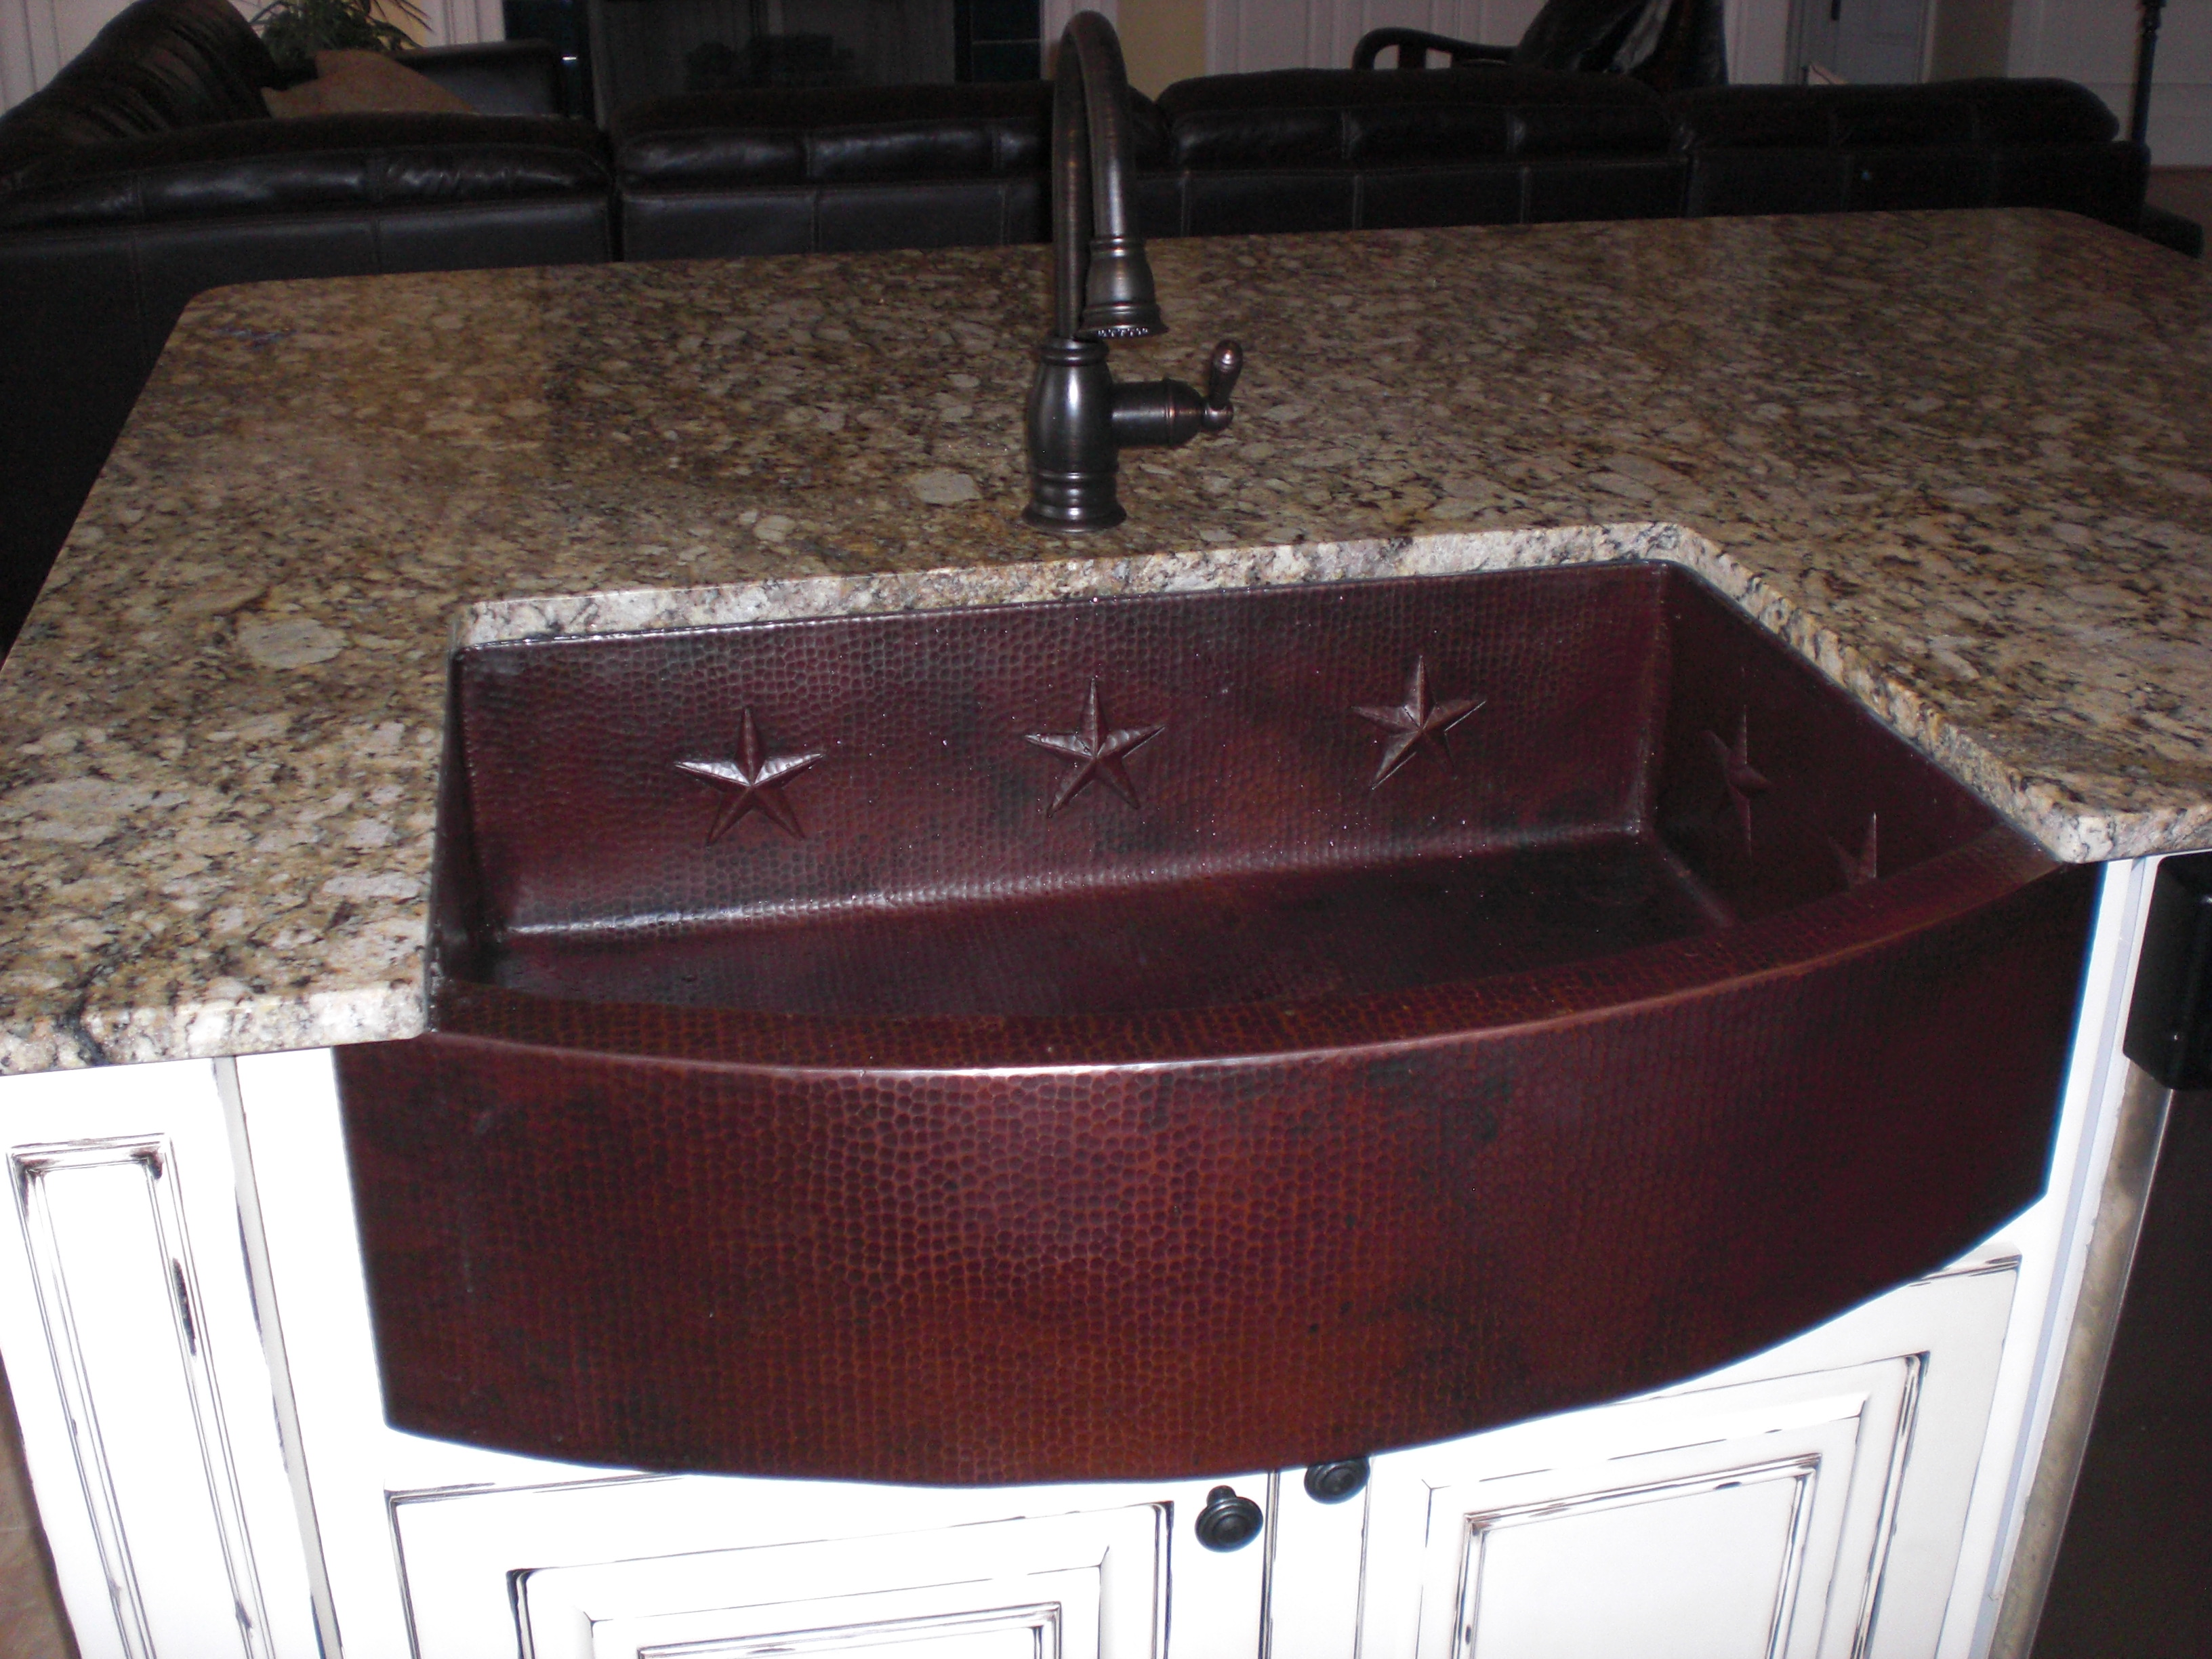 CK7526L35 Copper Farmhouse Sink - Dark Smoke